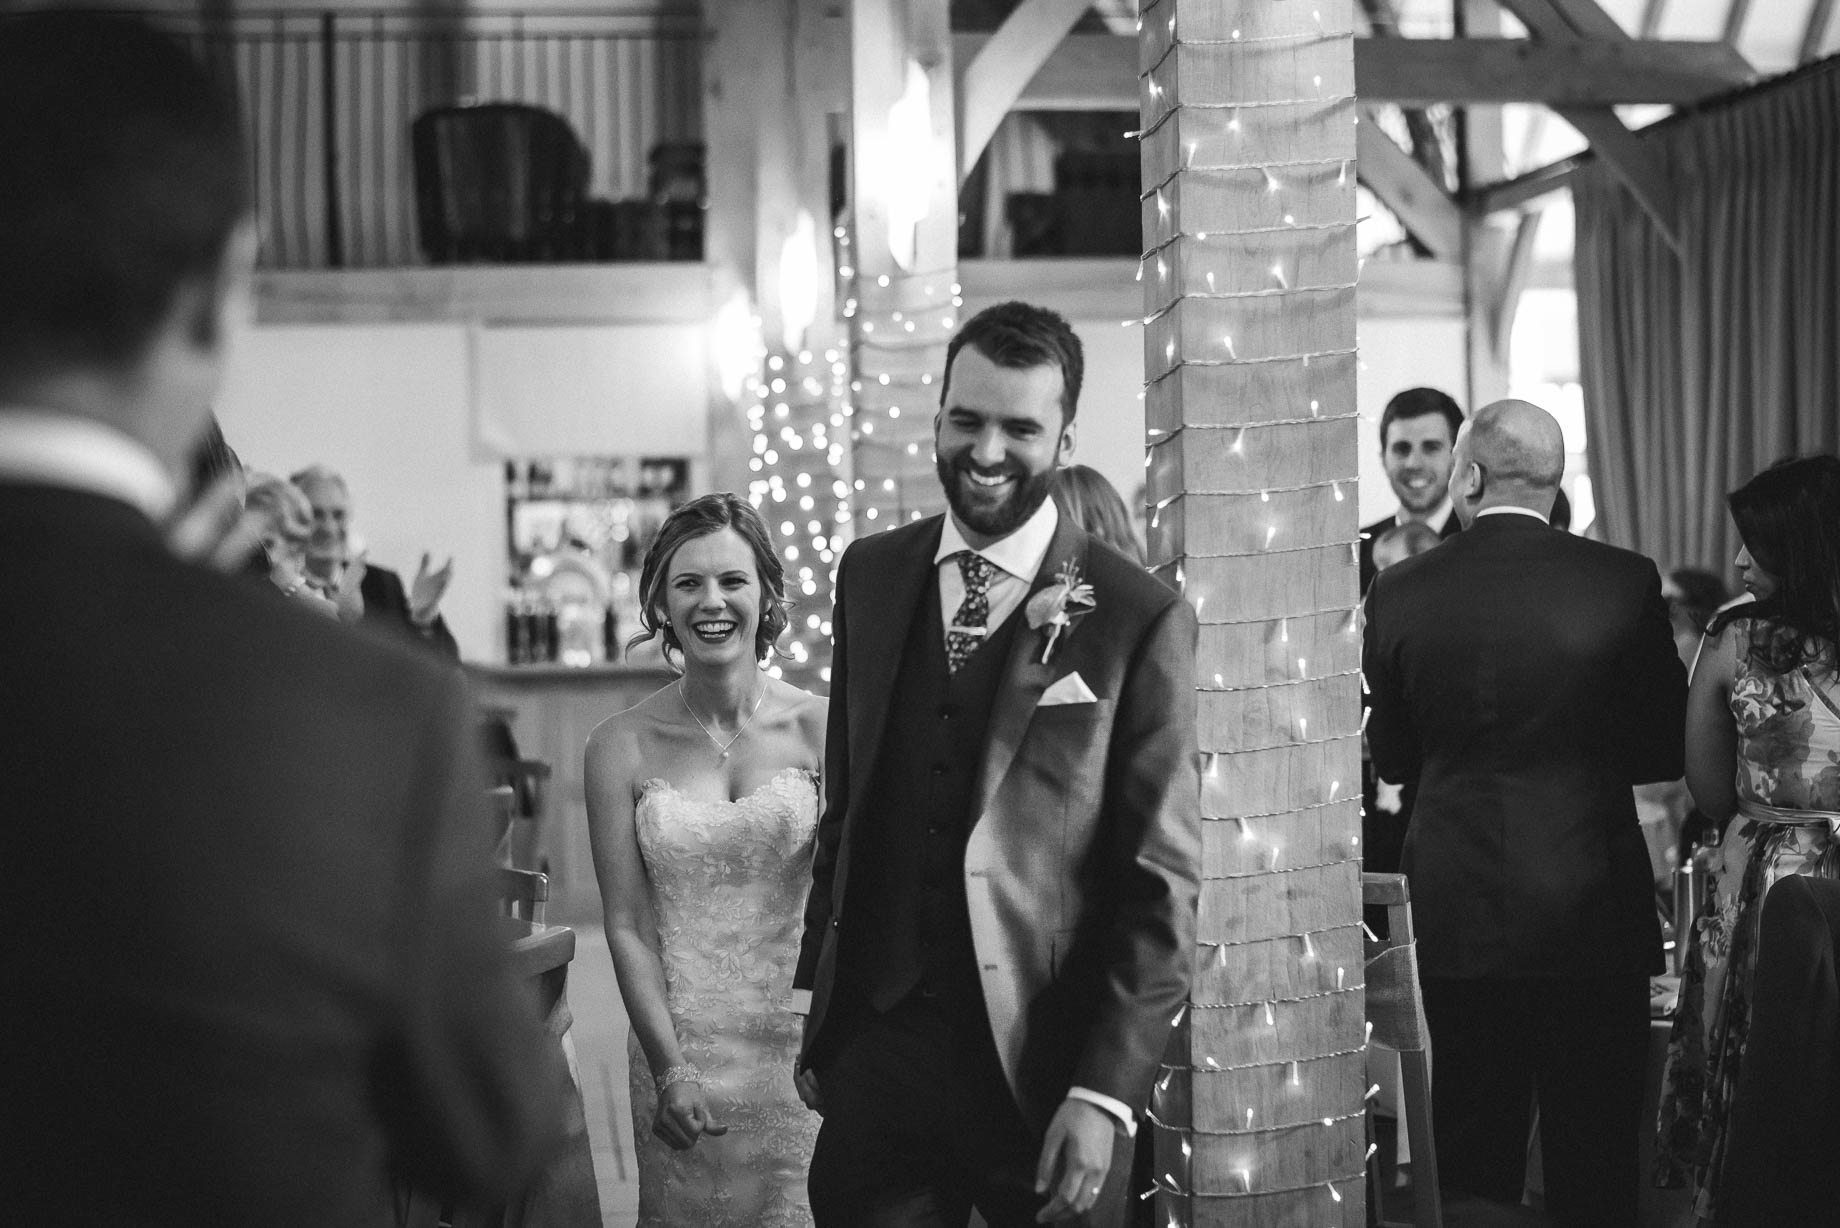 Rivervale Barn wedding photography by Guy Collier - Claire and Simon (107 of 133)